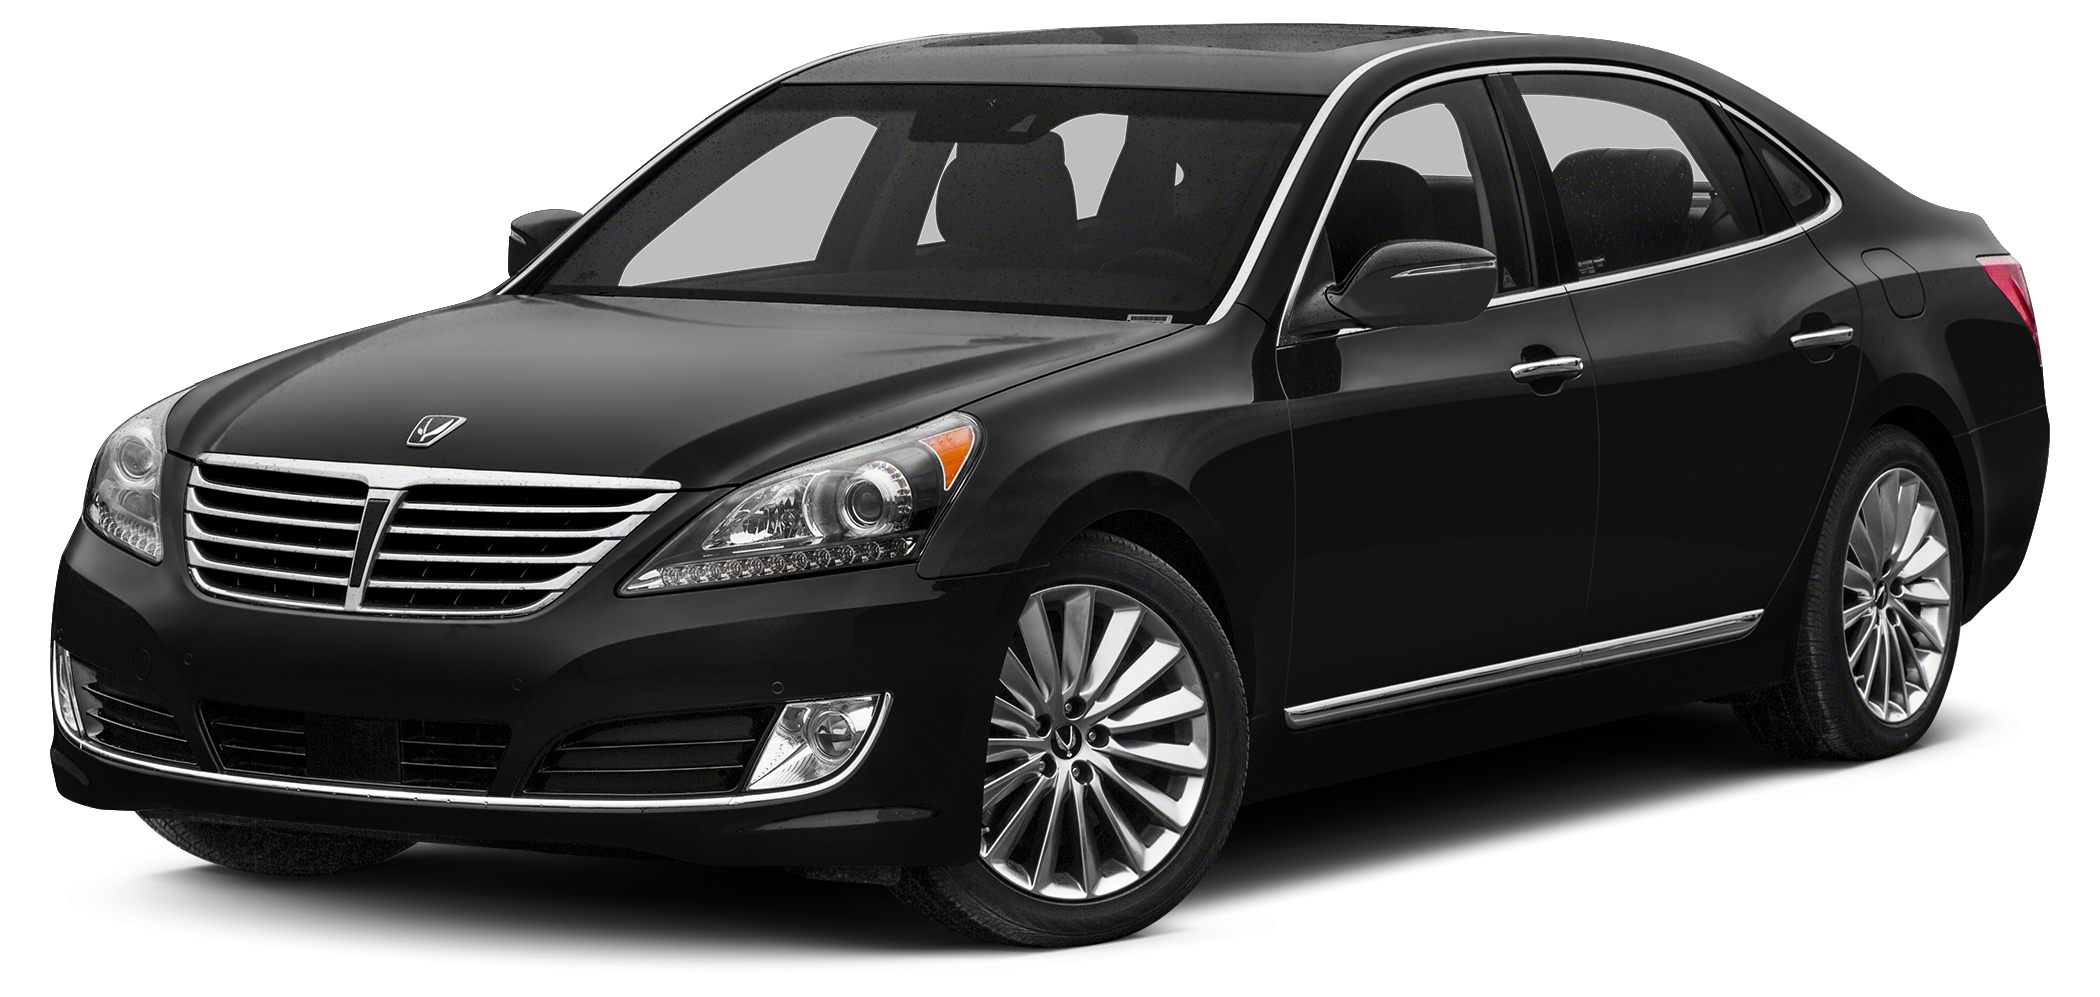 2015 Hyundai Equus Signature This 2015 Hyundai Equus has everything you need Drive off with the be